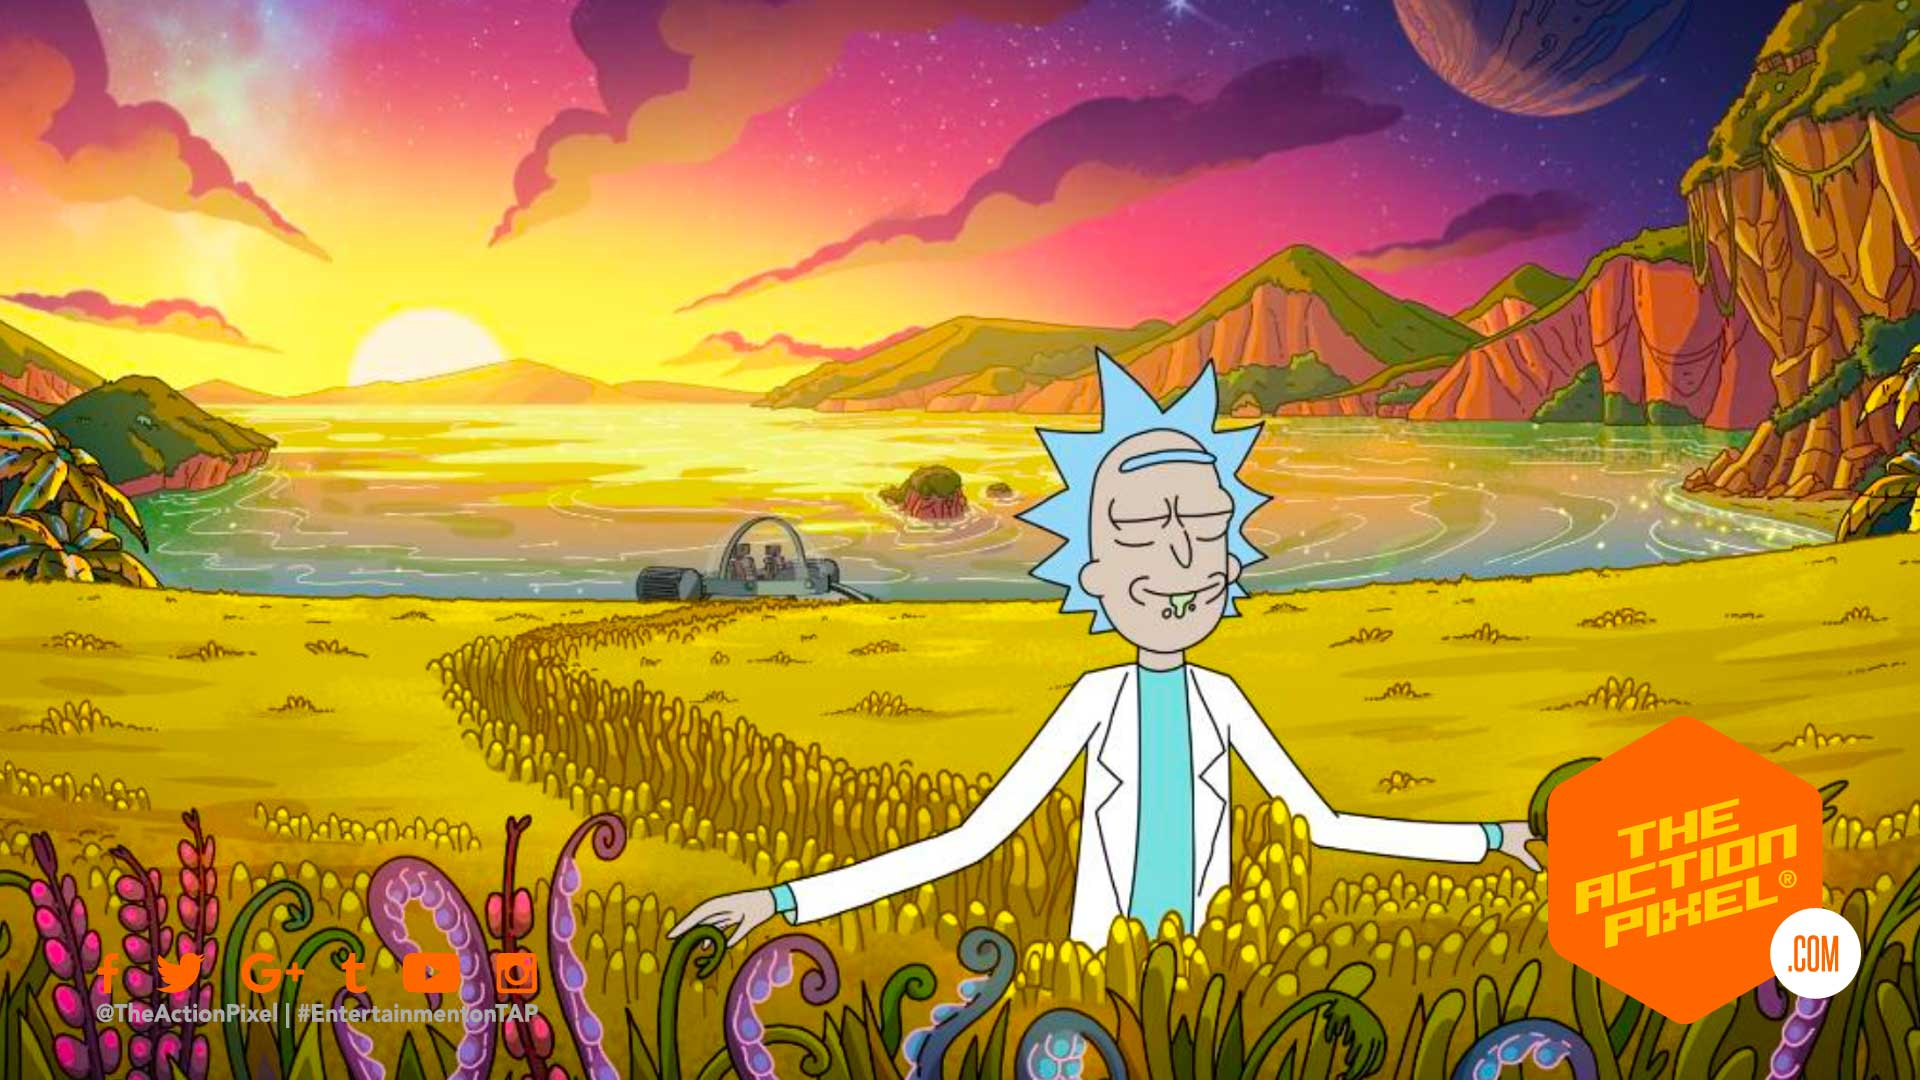 rick and morty 4, rick , morty,rick and morty, ram4,rick and morty season 4, animation, adult swim, cartoon network, the action pixel, entertainment on tap, featured, rick and morty 4 images, first look, rick and morty 4 first look, rick and morty 4 preview